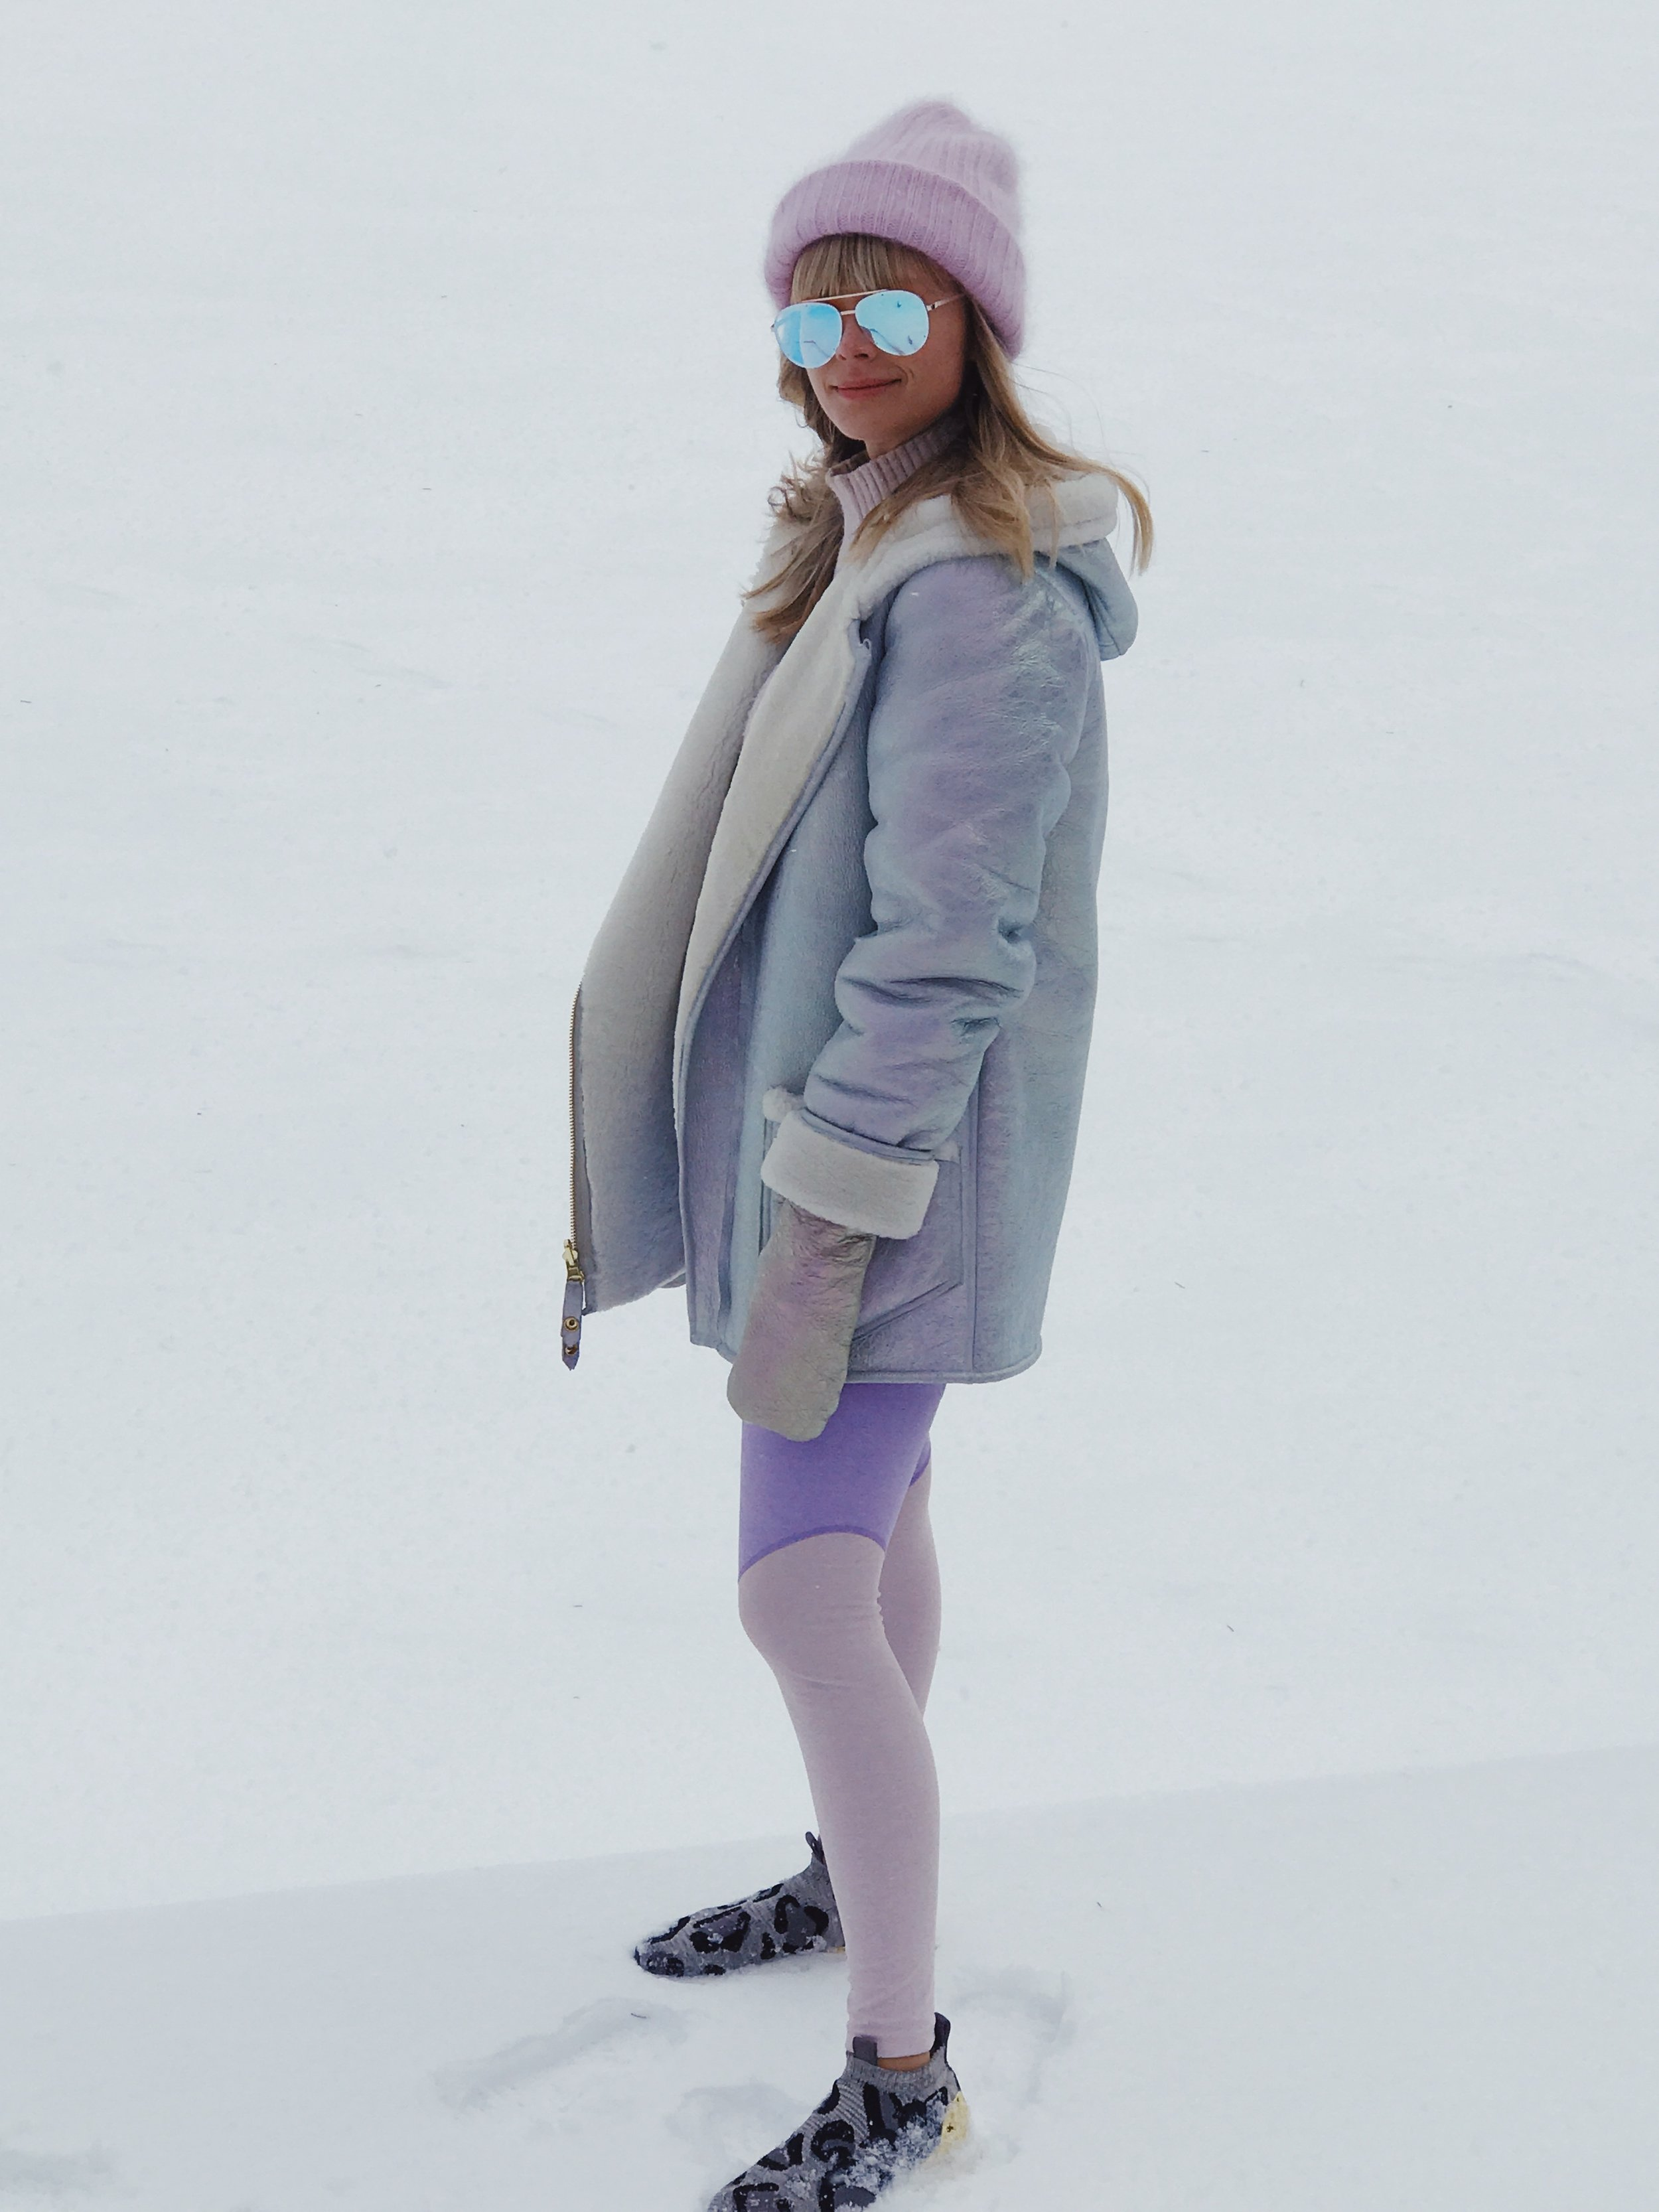 Mosha wearing Therma Kota Silja Shearling in Arctic Opal .JPG